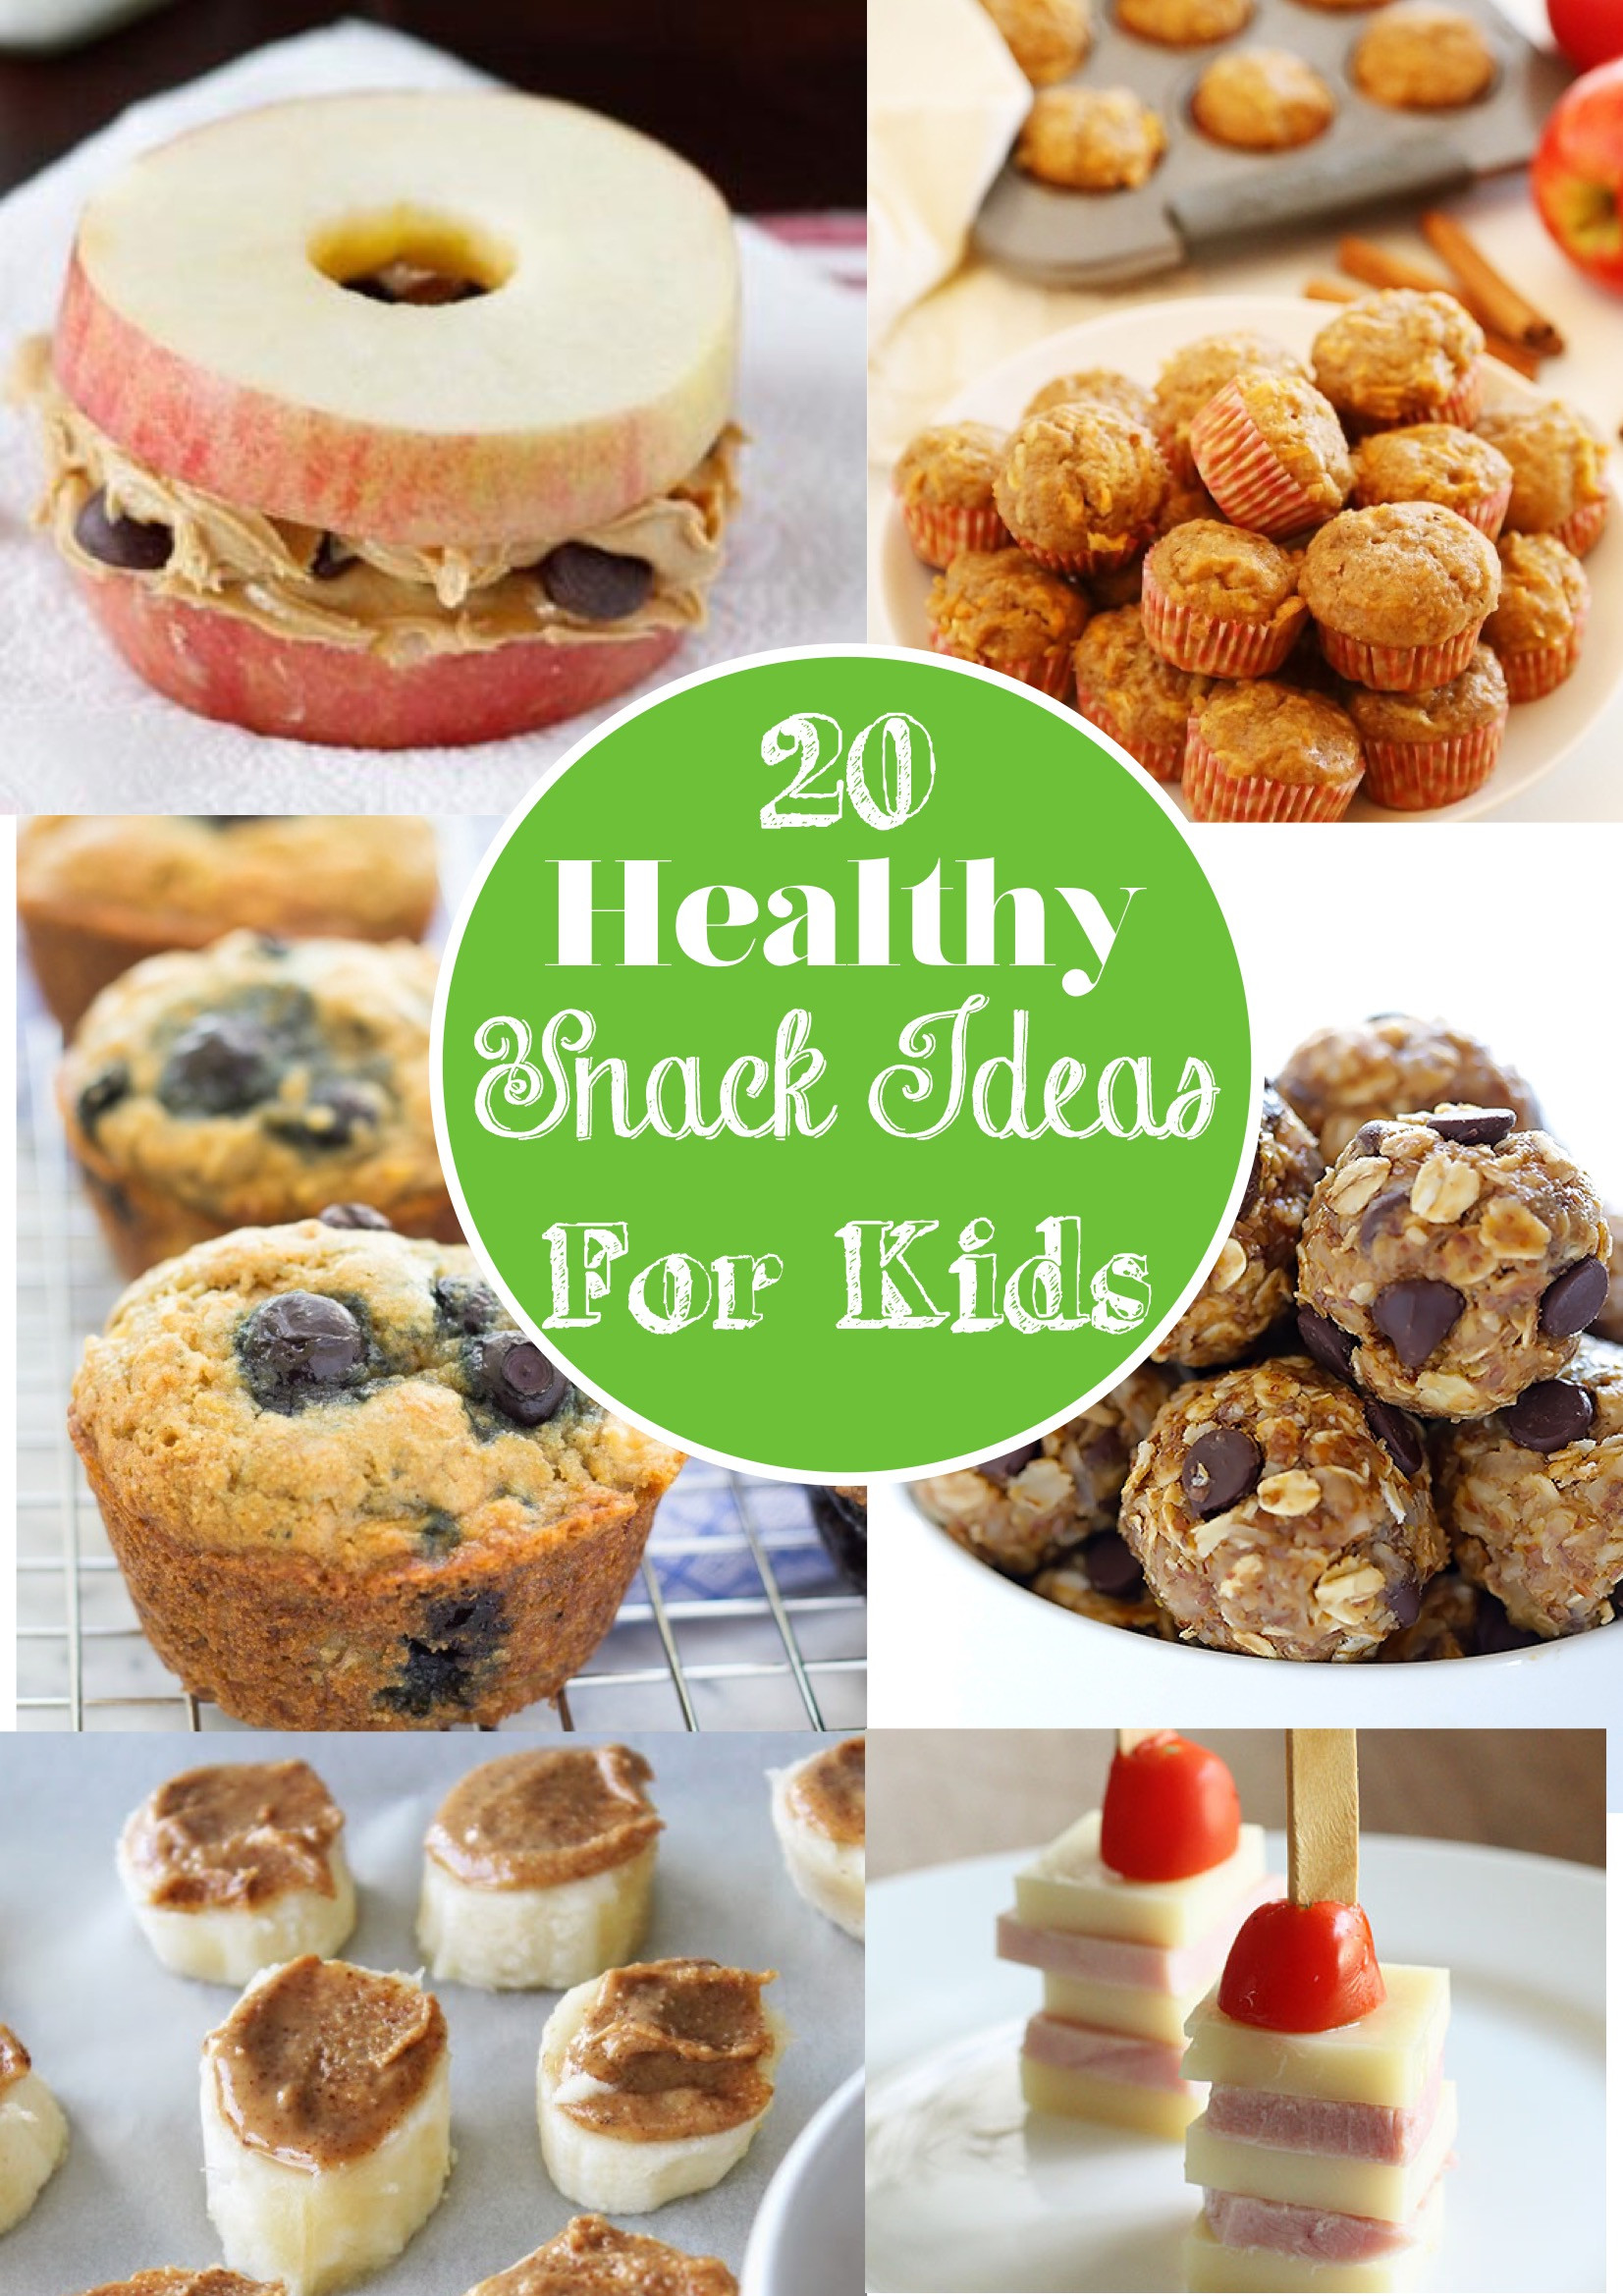 Quick Healthy Snacks For Kids  20 Healthy Snack Ideas For Kids Snack Smart